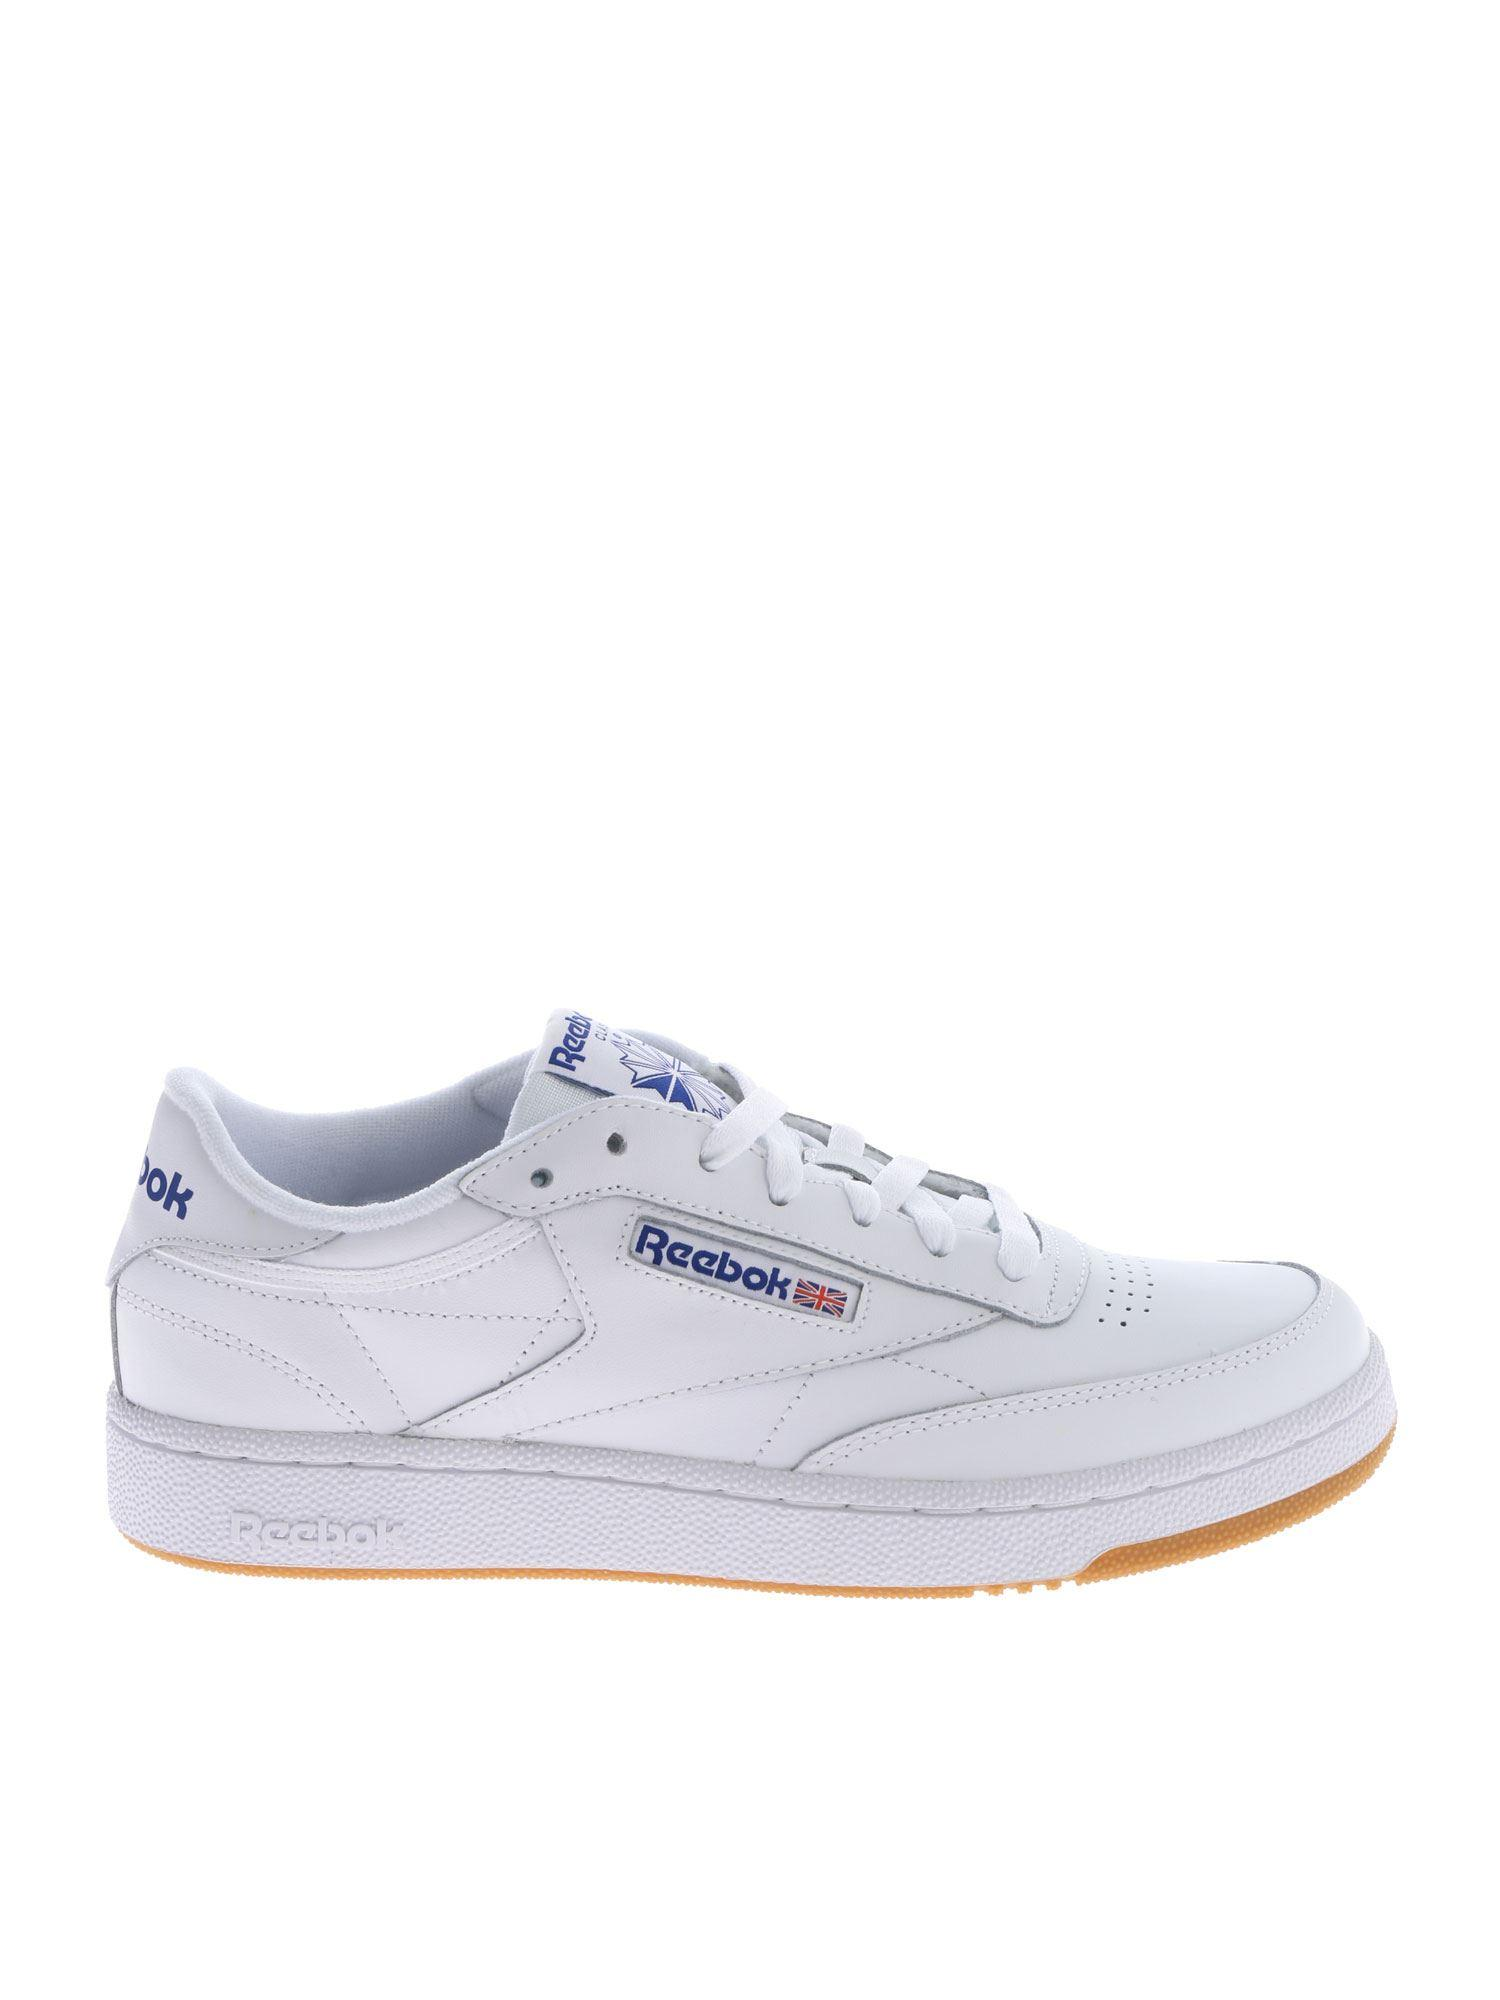 8889f62d1f4 Reebok - Club C 85 White Sneakers With Blue Logos for Men - Lyst. View  fullscreen